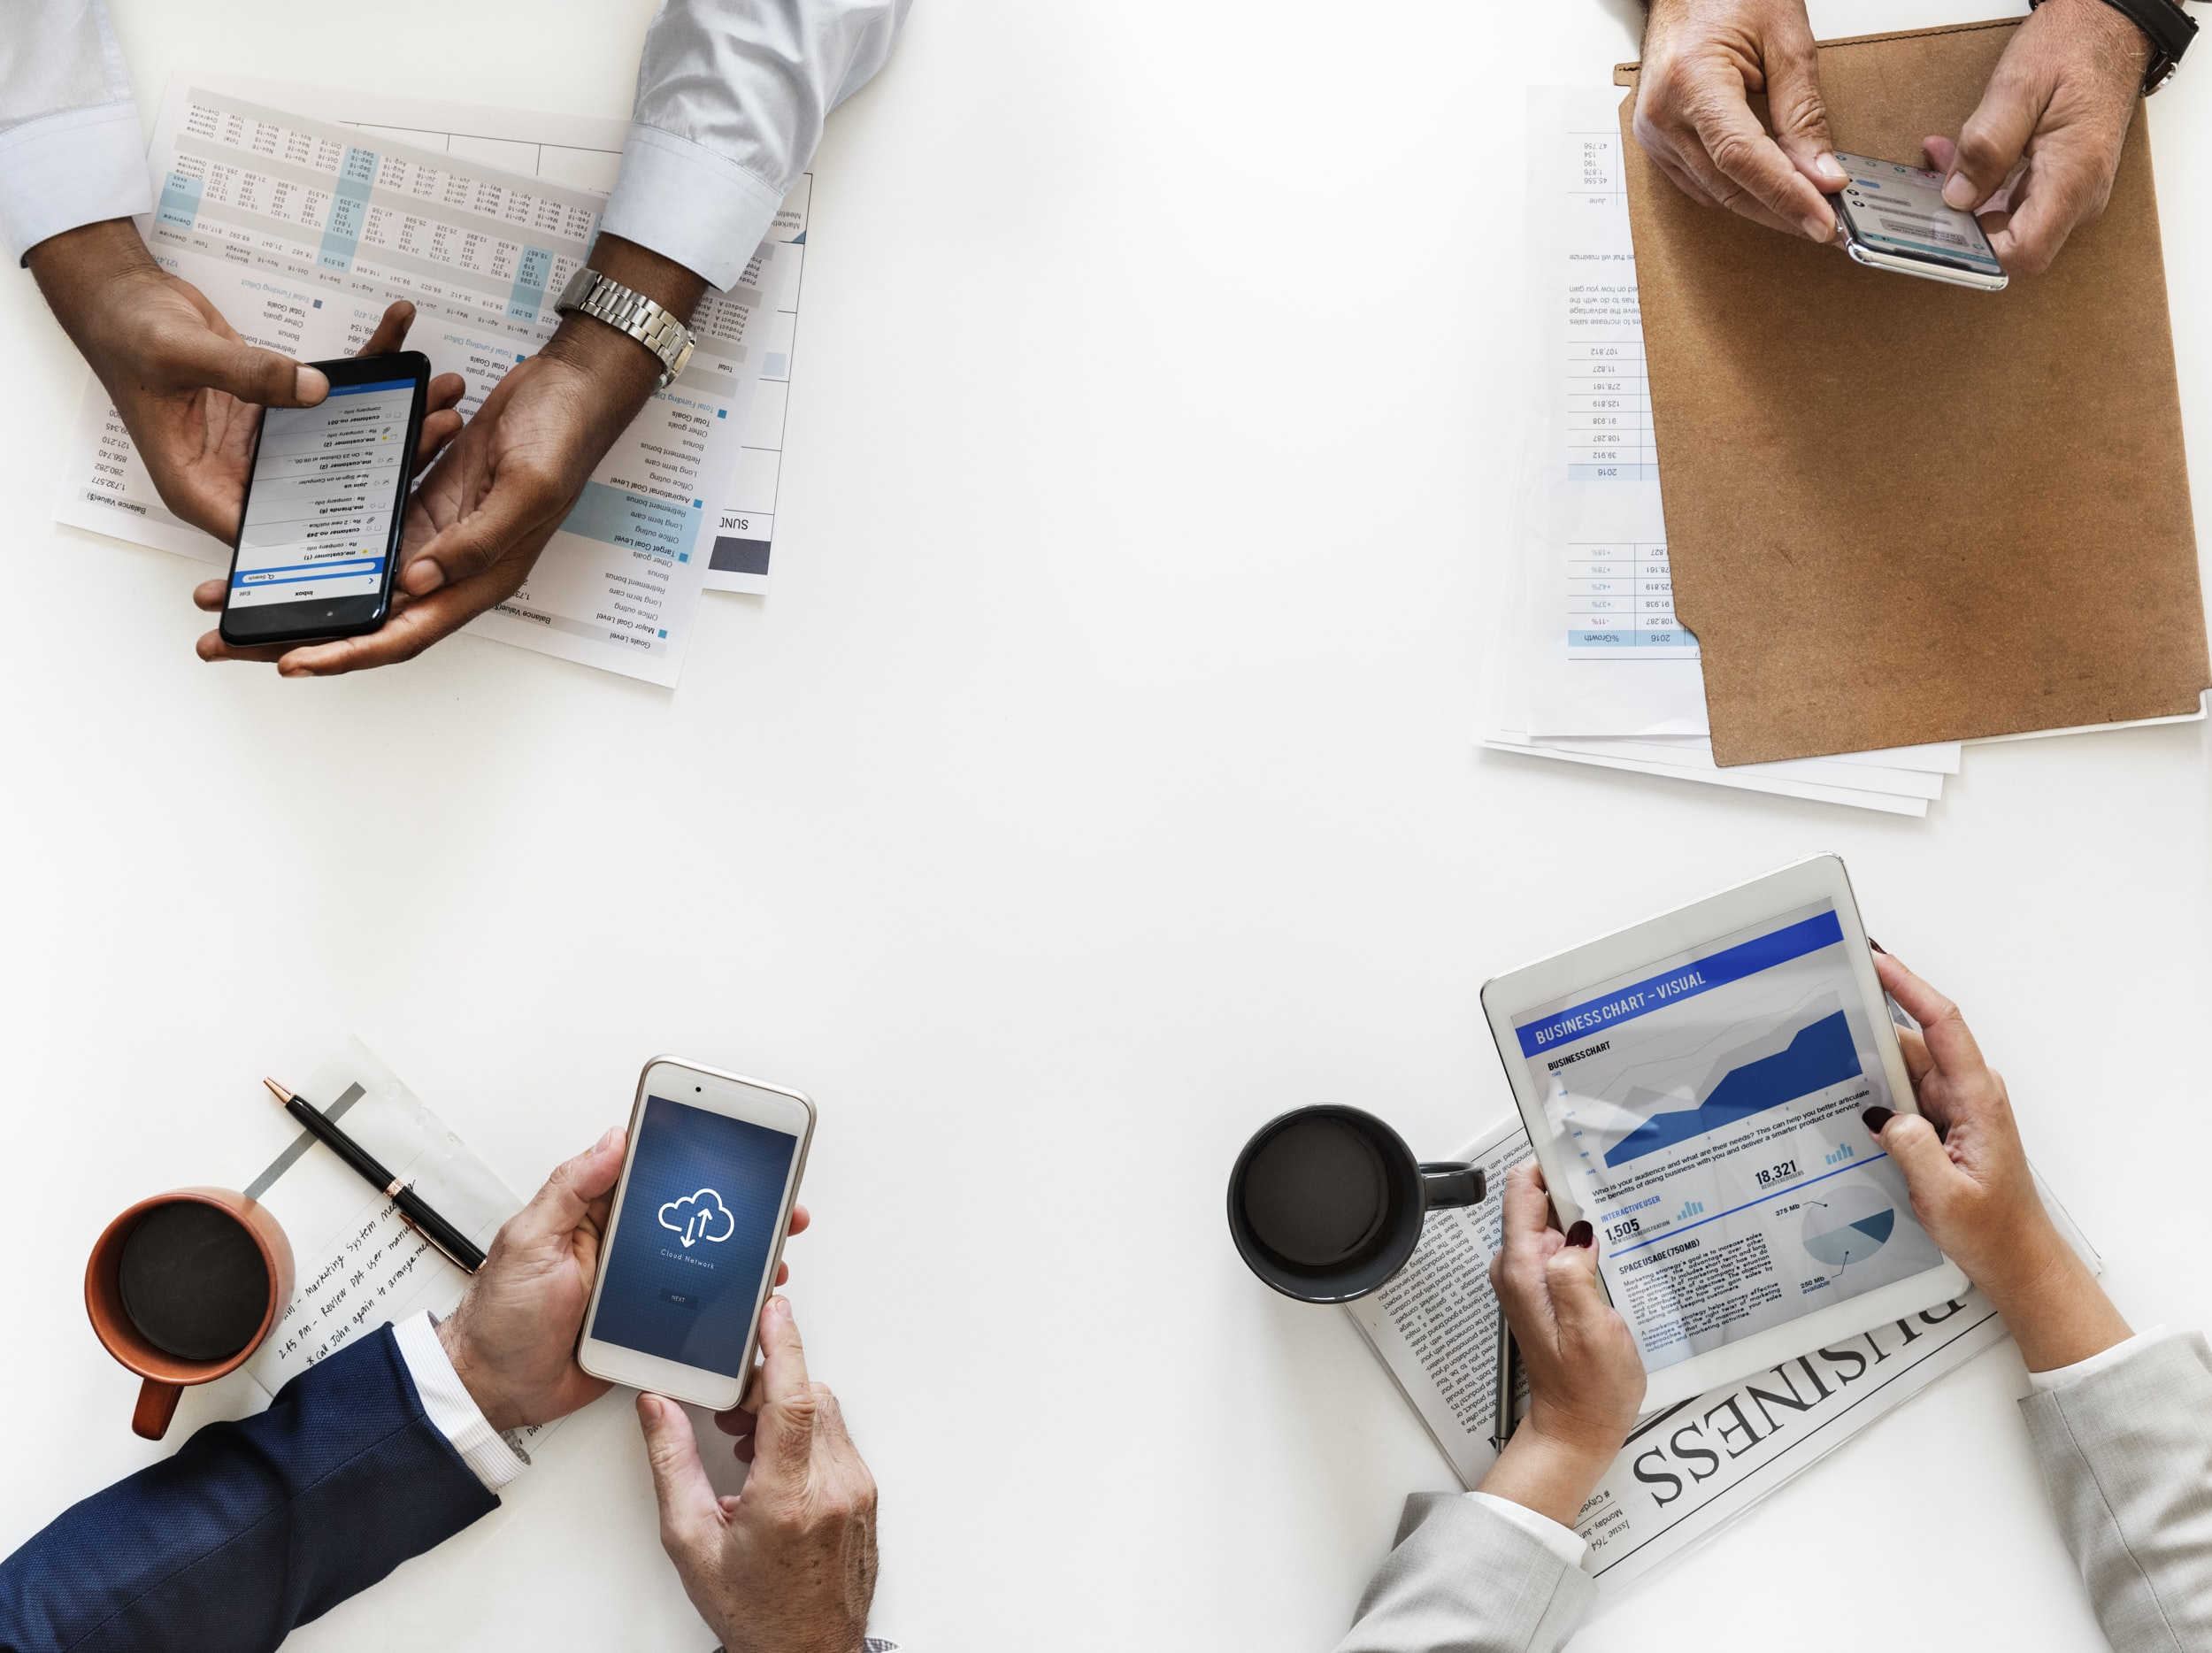 flat lay photo of four person holding smartphone and book